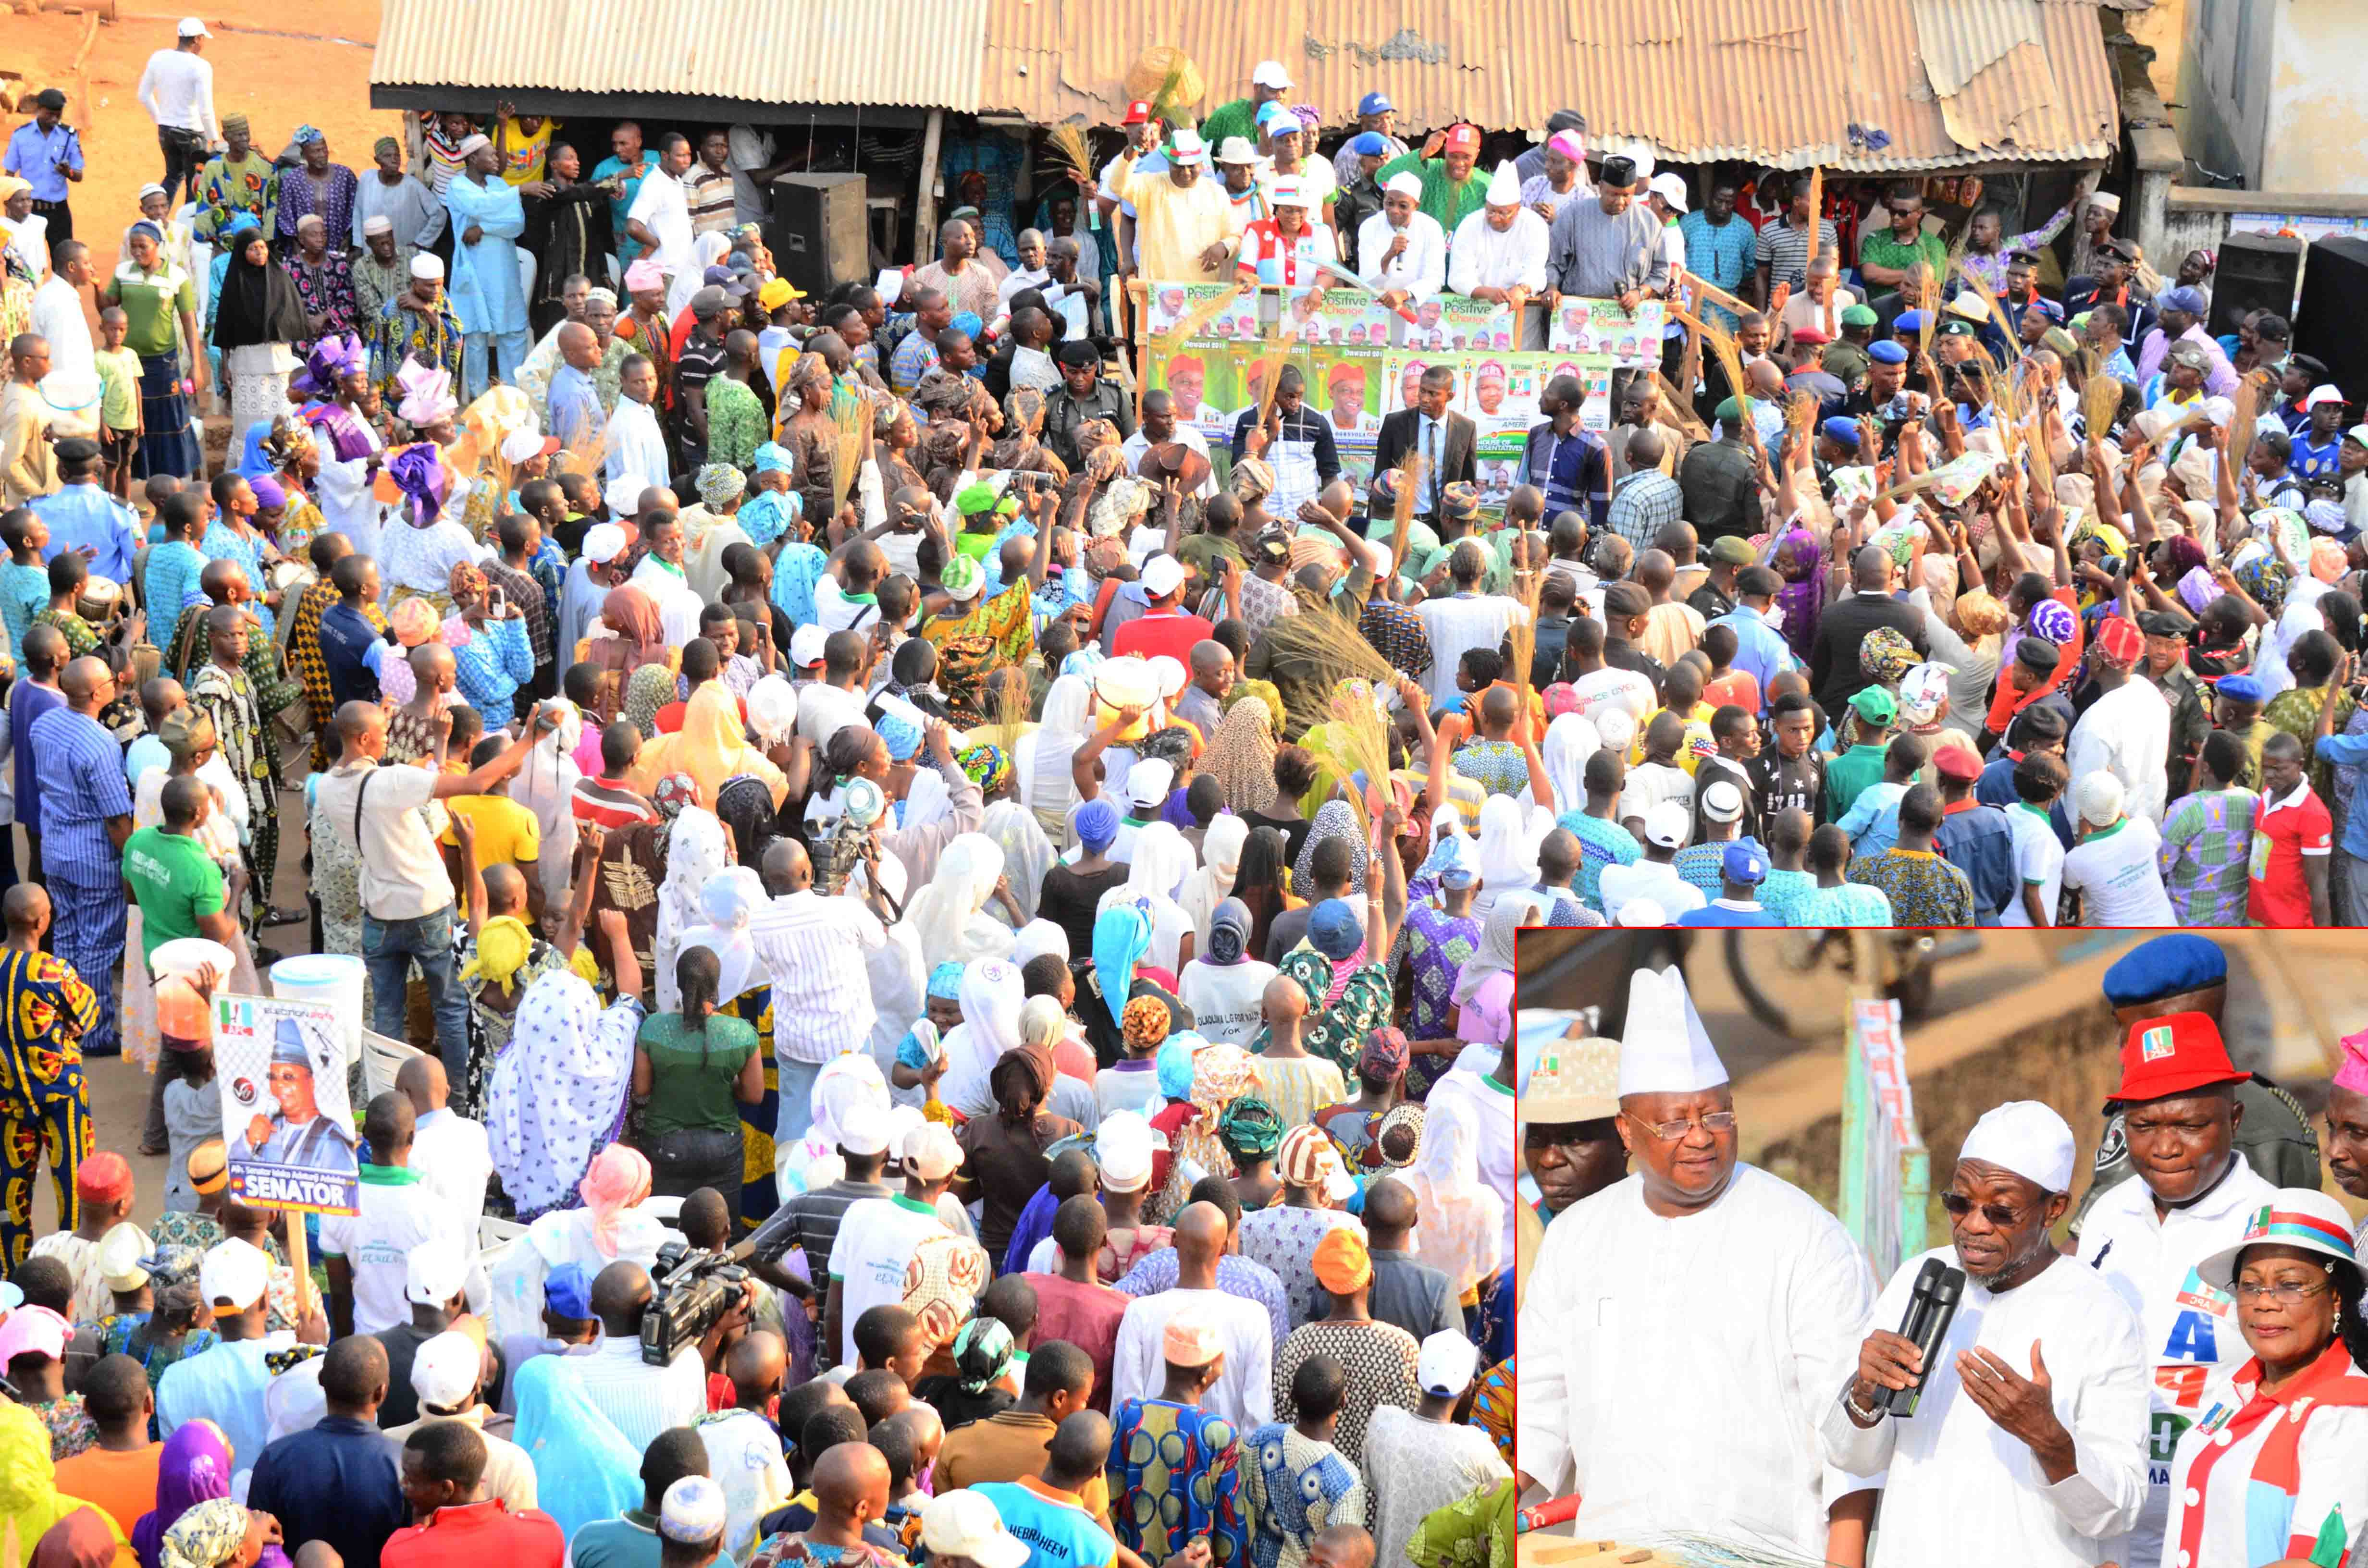 Governor State of Osun, Ogbeni Rauf Aregbesola addressing his Party supporters, at a Campaign Rally for General Muhammadu Buhari and National Assembly aspirants in Osun West Senatorial District at Ile-Ogbo. Insert: From left, Senatorial Aspirant, Osun West Senatorial District, Senator Isiaka Adeleke; Governor Rauf Aregbesola; his Deputy, Mrs Titi Laoye-Tomori and others, during the weekend